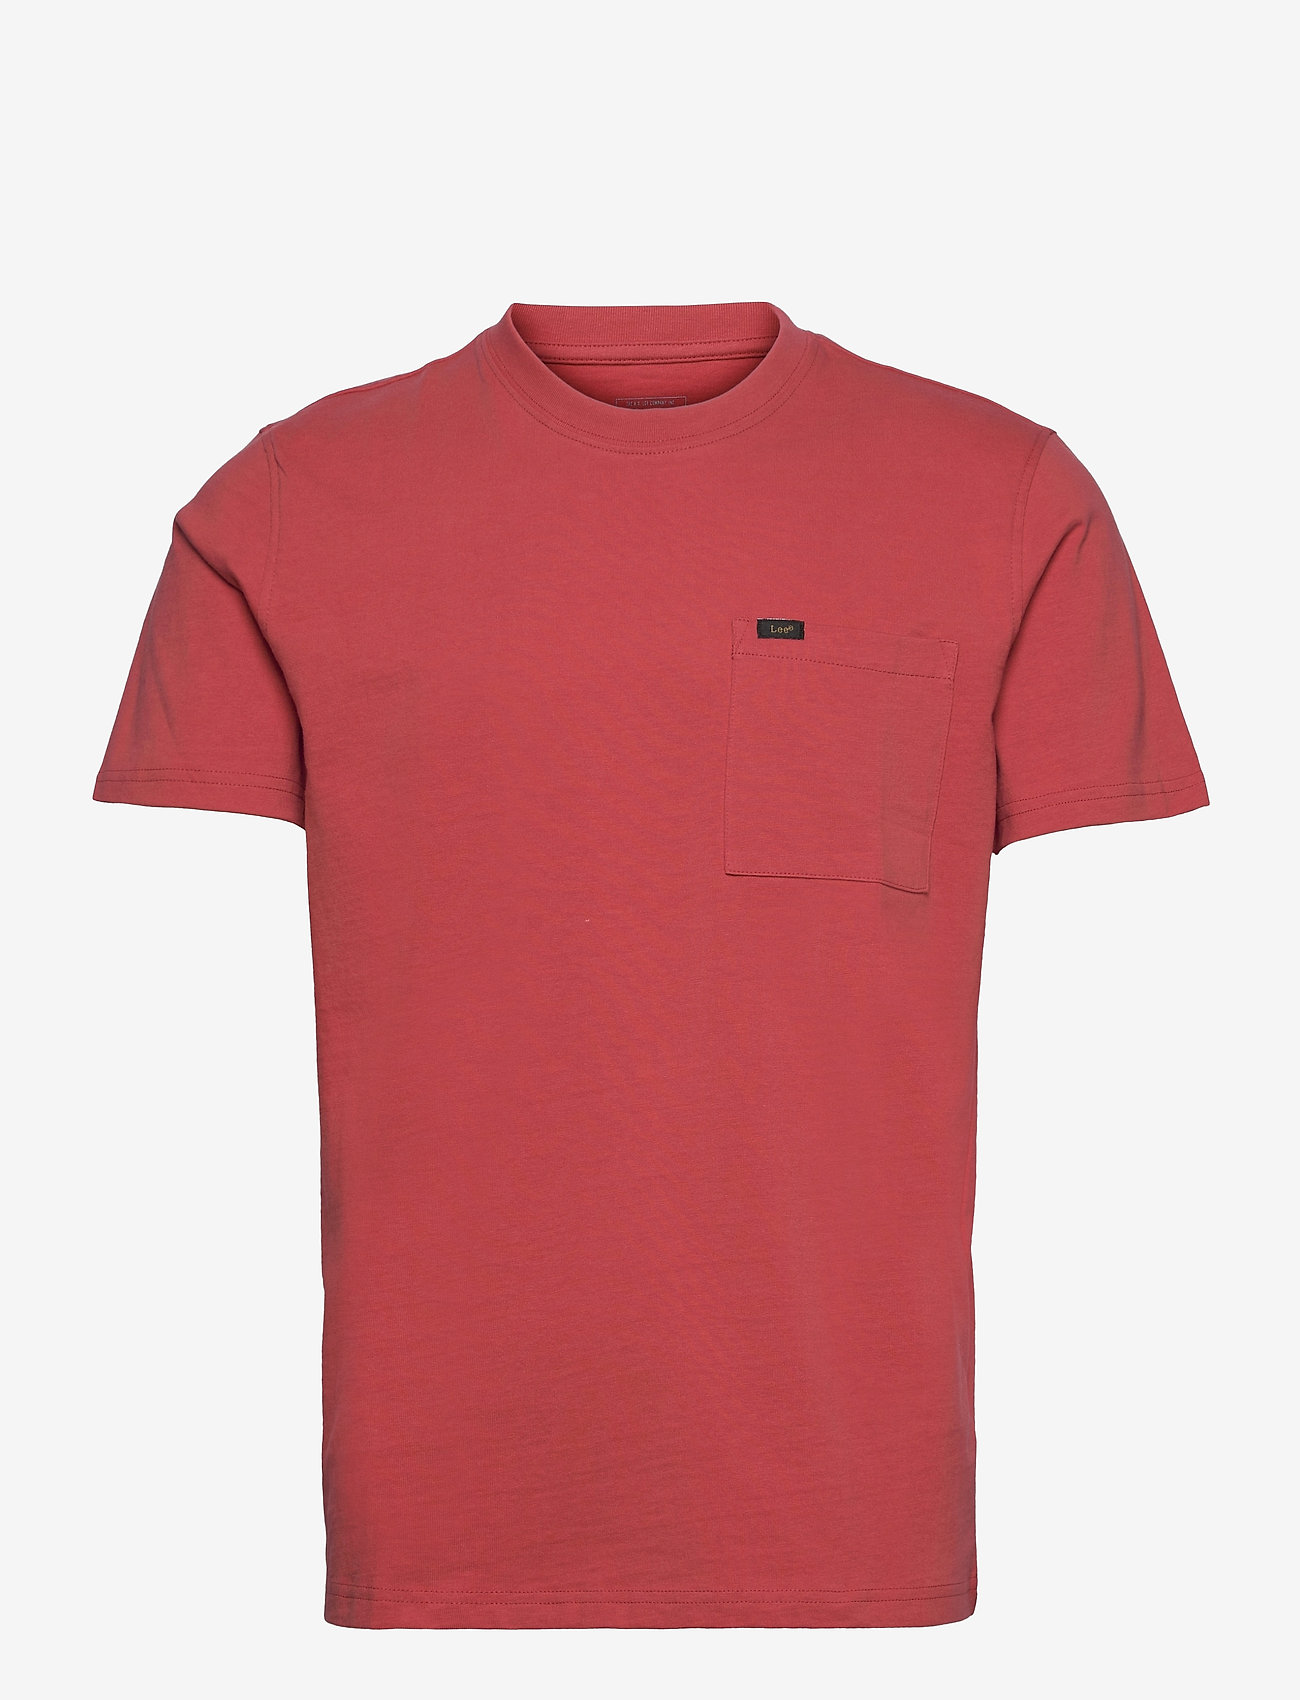 Lee Jeans - SS POCKET TEE - basic t-shirts - washed red - 0